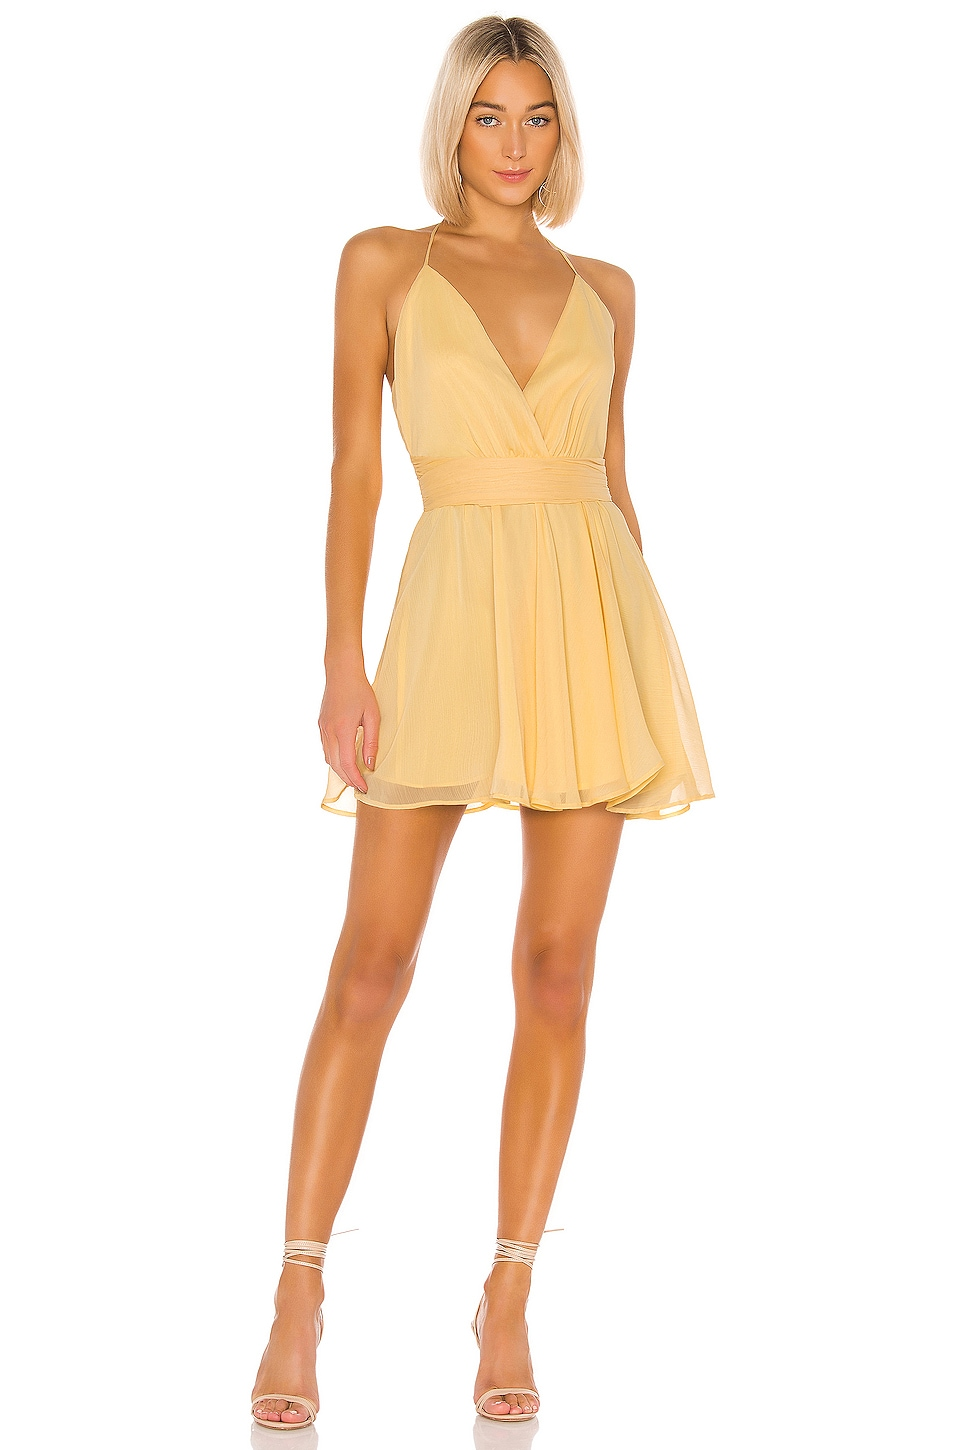 NBD Robyn Mini Dress in Cream Yellow